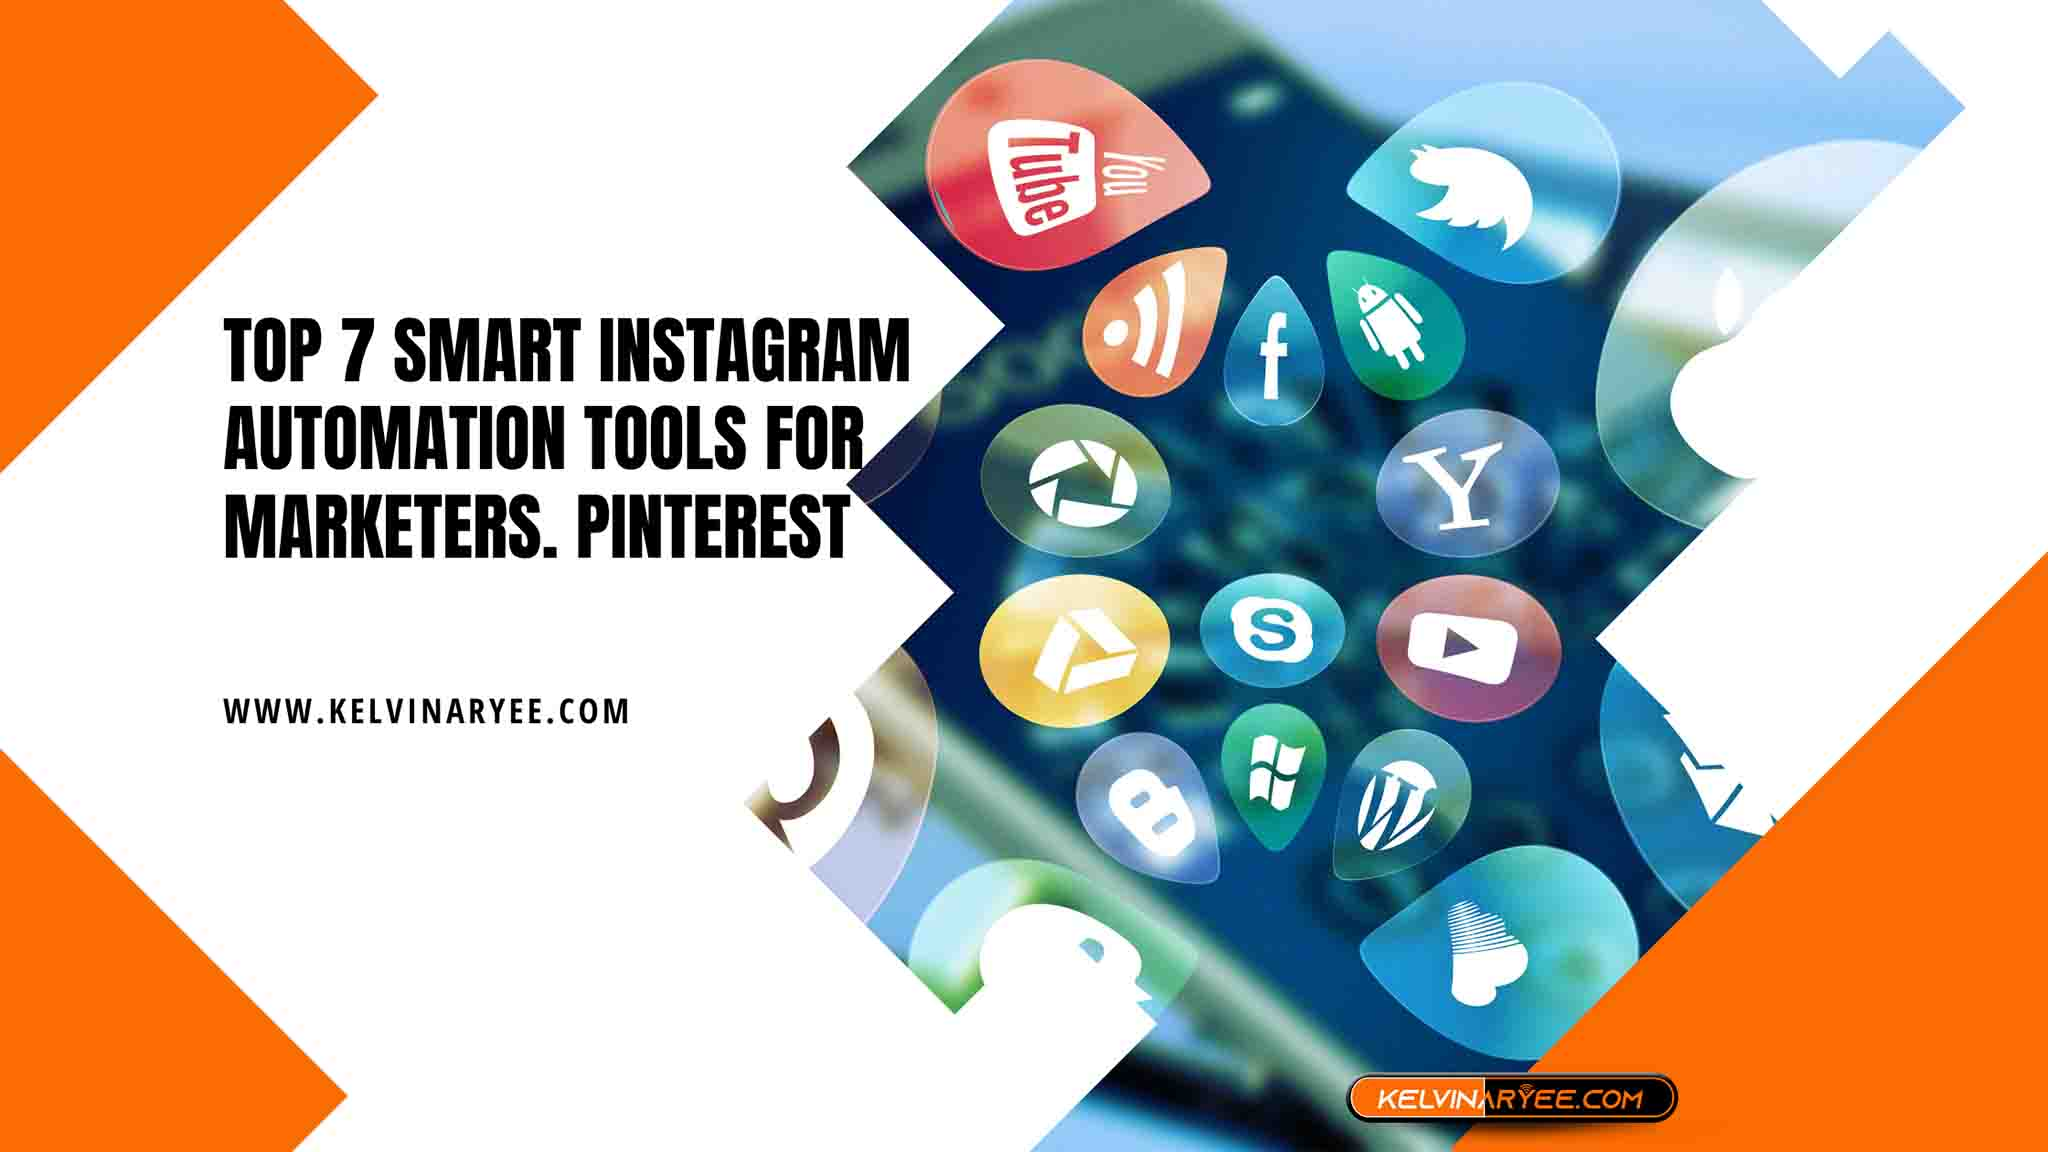 You are currently viewing Top 7 Smart Instagram Automation Tools For Marketers